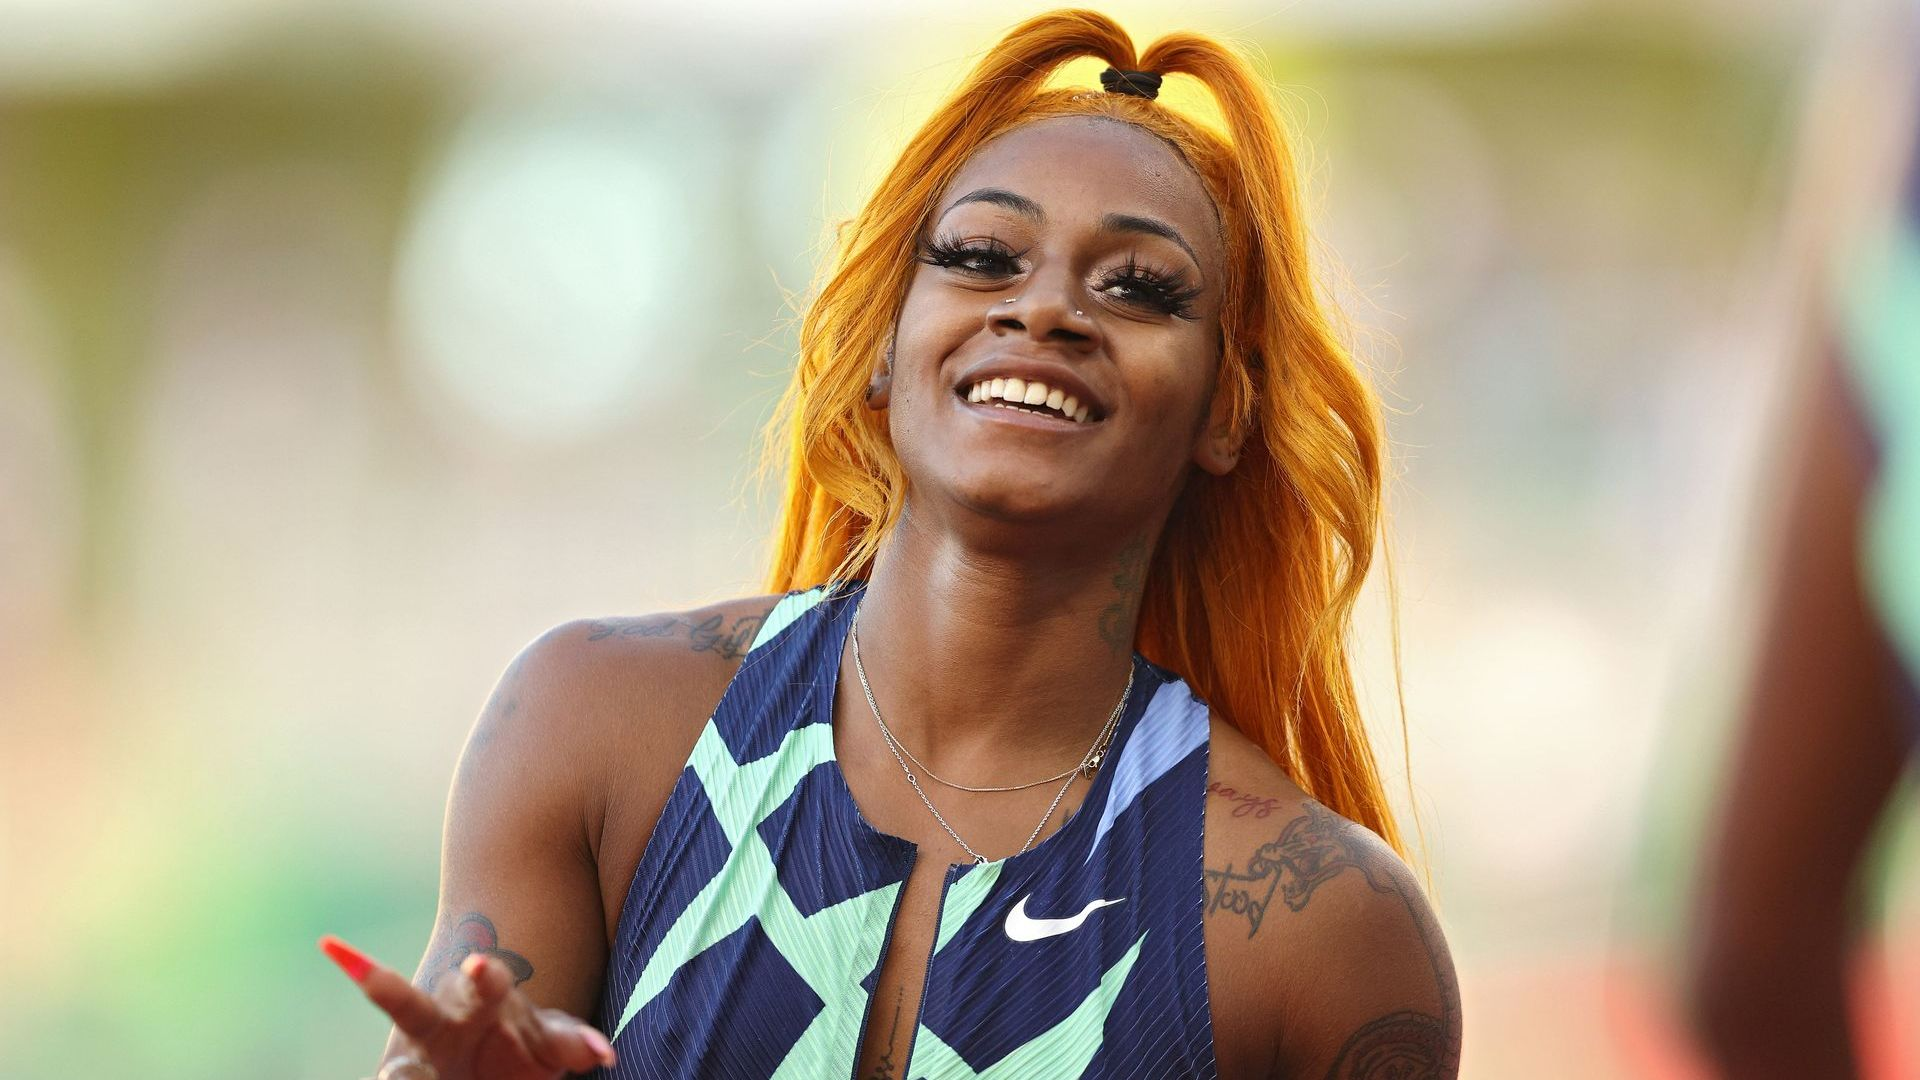 Fans React to Sha'Carri Richardson's 9th Place Finish at Prefontaine Classic, Withdrawal from Second Race